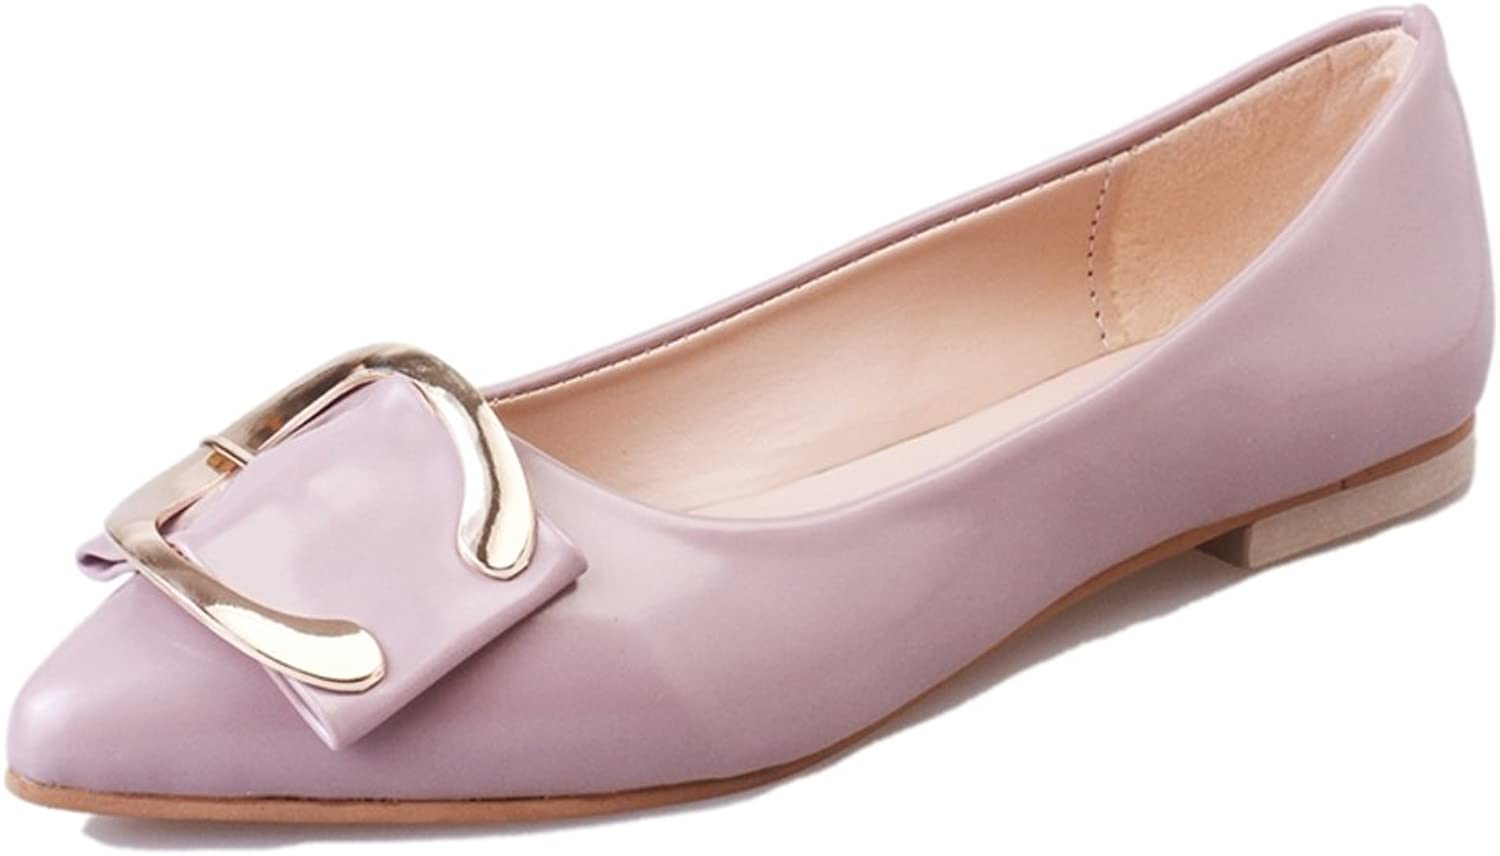 RHFDVGDS autumn pointed flat casual shoes Elegant pale leather fashion Lady shoes